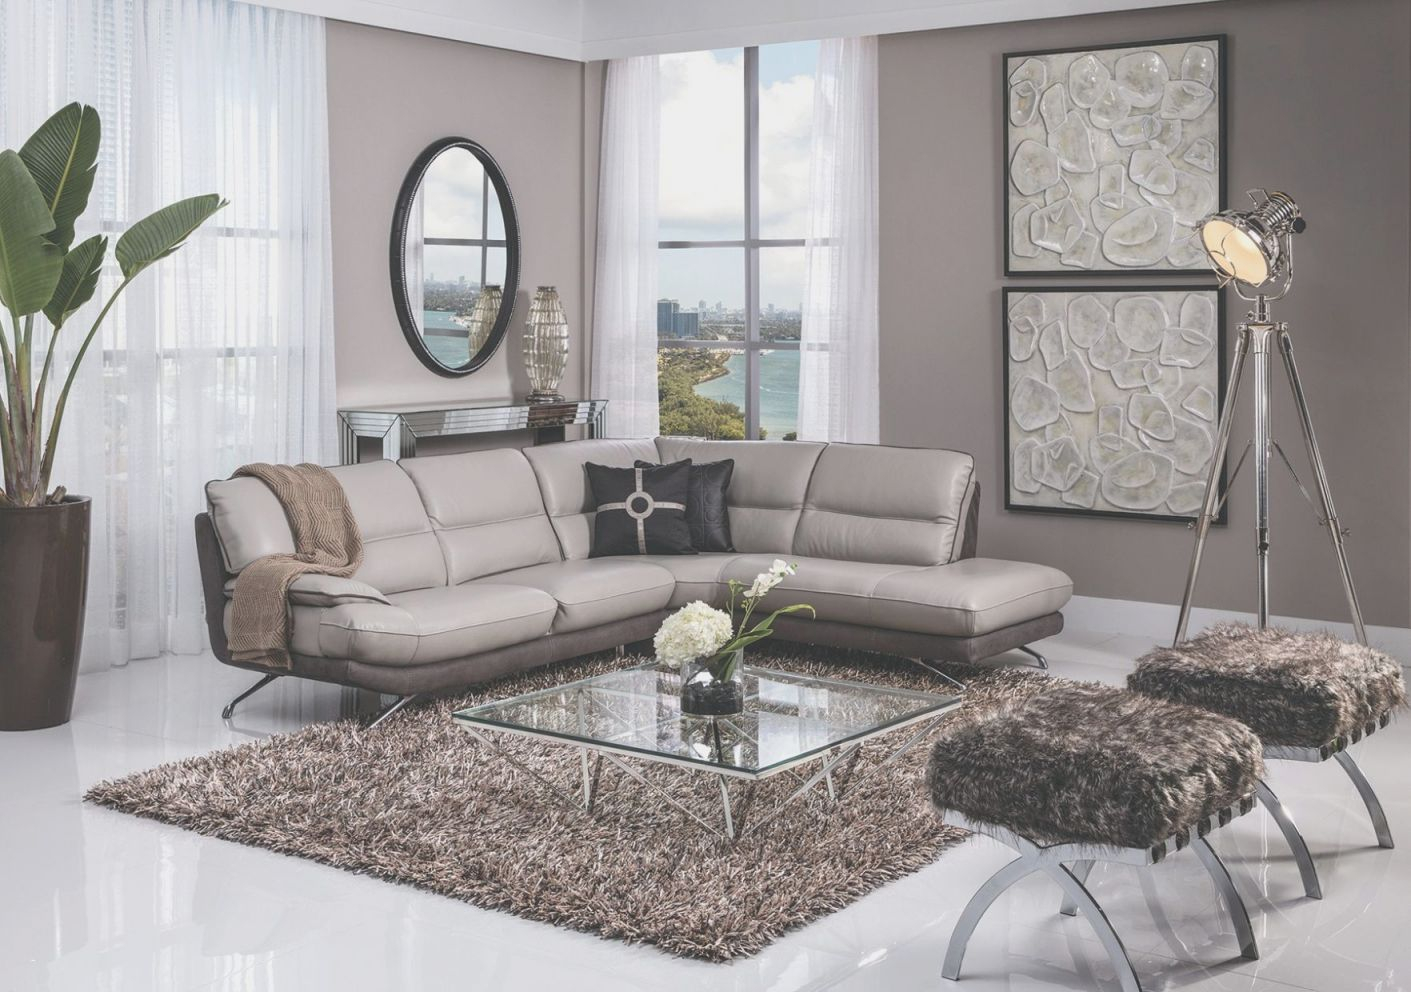 El Dorado Furniture Outlet | Furniture Inspiration | Living regarding El Dorado Furniture Living Room Sets